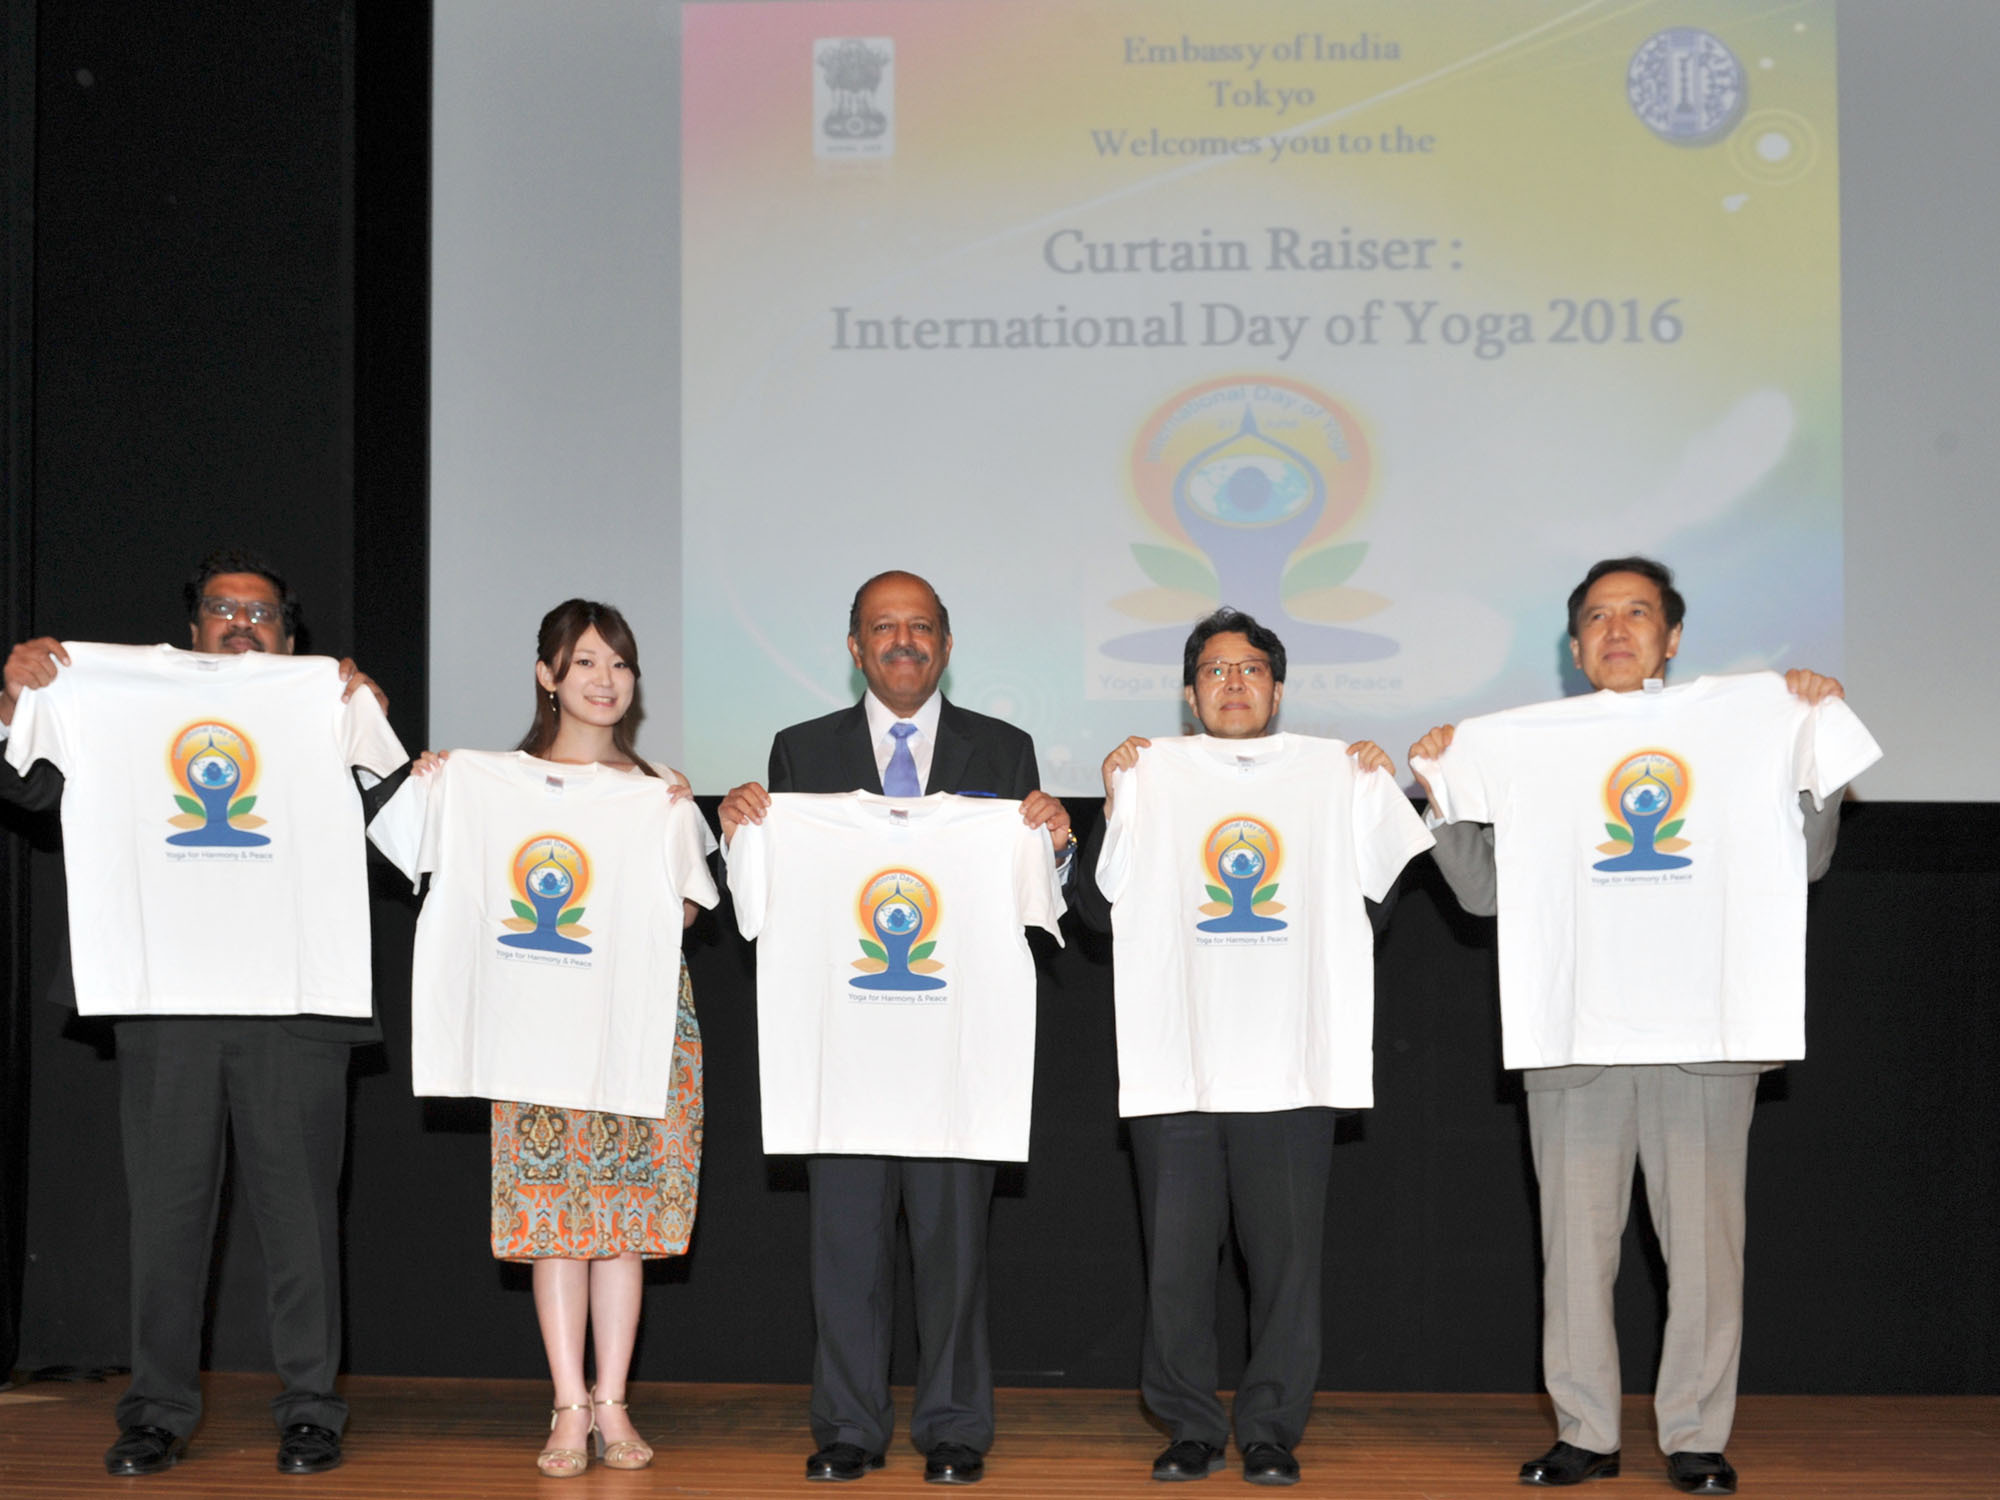 From left: Tech Mahindra Vice President and Head of North Asia Amitava Ghosh; Jury's Special Award winner and Miss World Japan 2015 Akiko Kato; Ambassador of India Sujan R. Chinoy; Japan Sports Authority Director General Tetsuya Kimura; and Maharishi Institute of Total Education Representative Director Shizuo Suzuki hold T-shirts bearing the logo for the second International Day of Yoga opening event at the Vivekananda Cultural Centre of the Indian Embassy in Tokyo on June 9. | YOSHIAKI MIURA